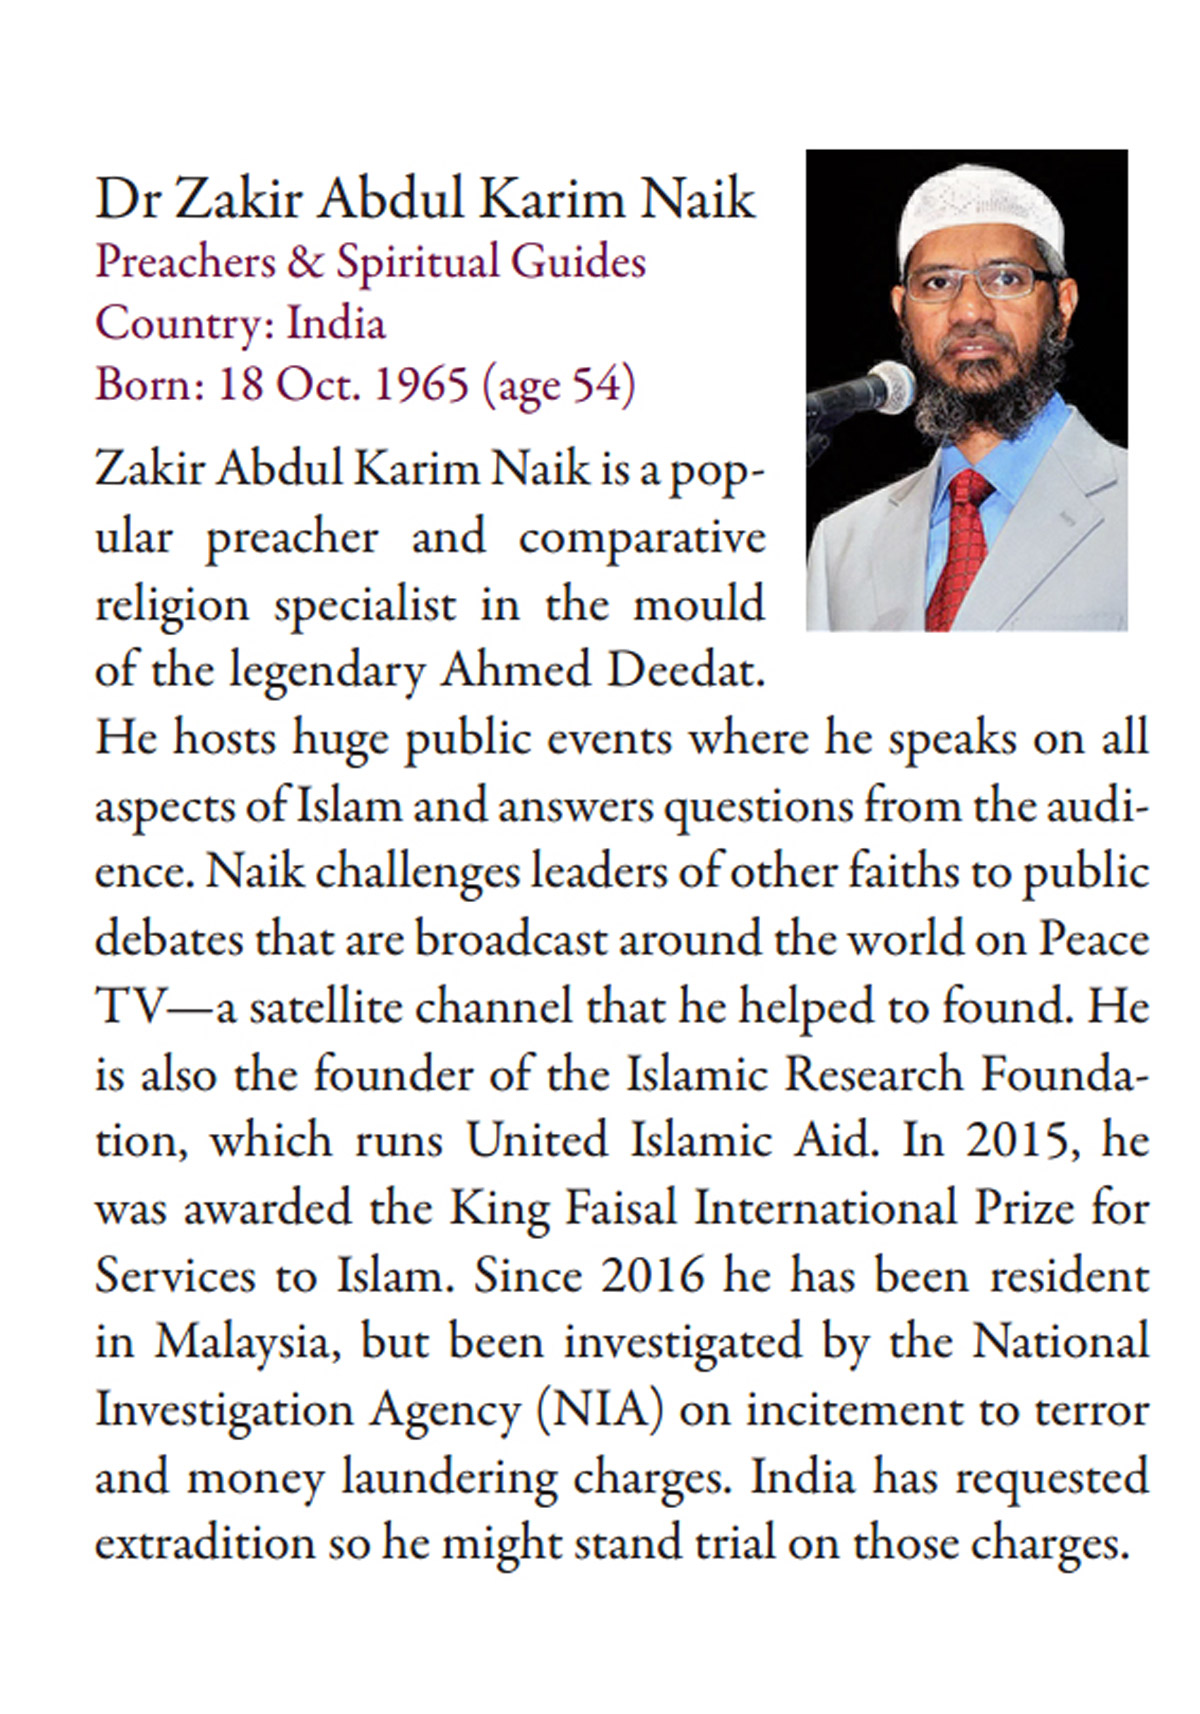 Listed in The Top 70 in 'The 500 Most Influential Muslims' – 2011 to 2020